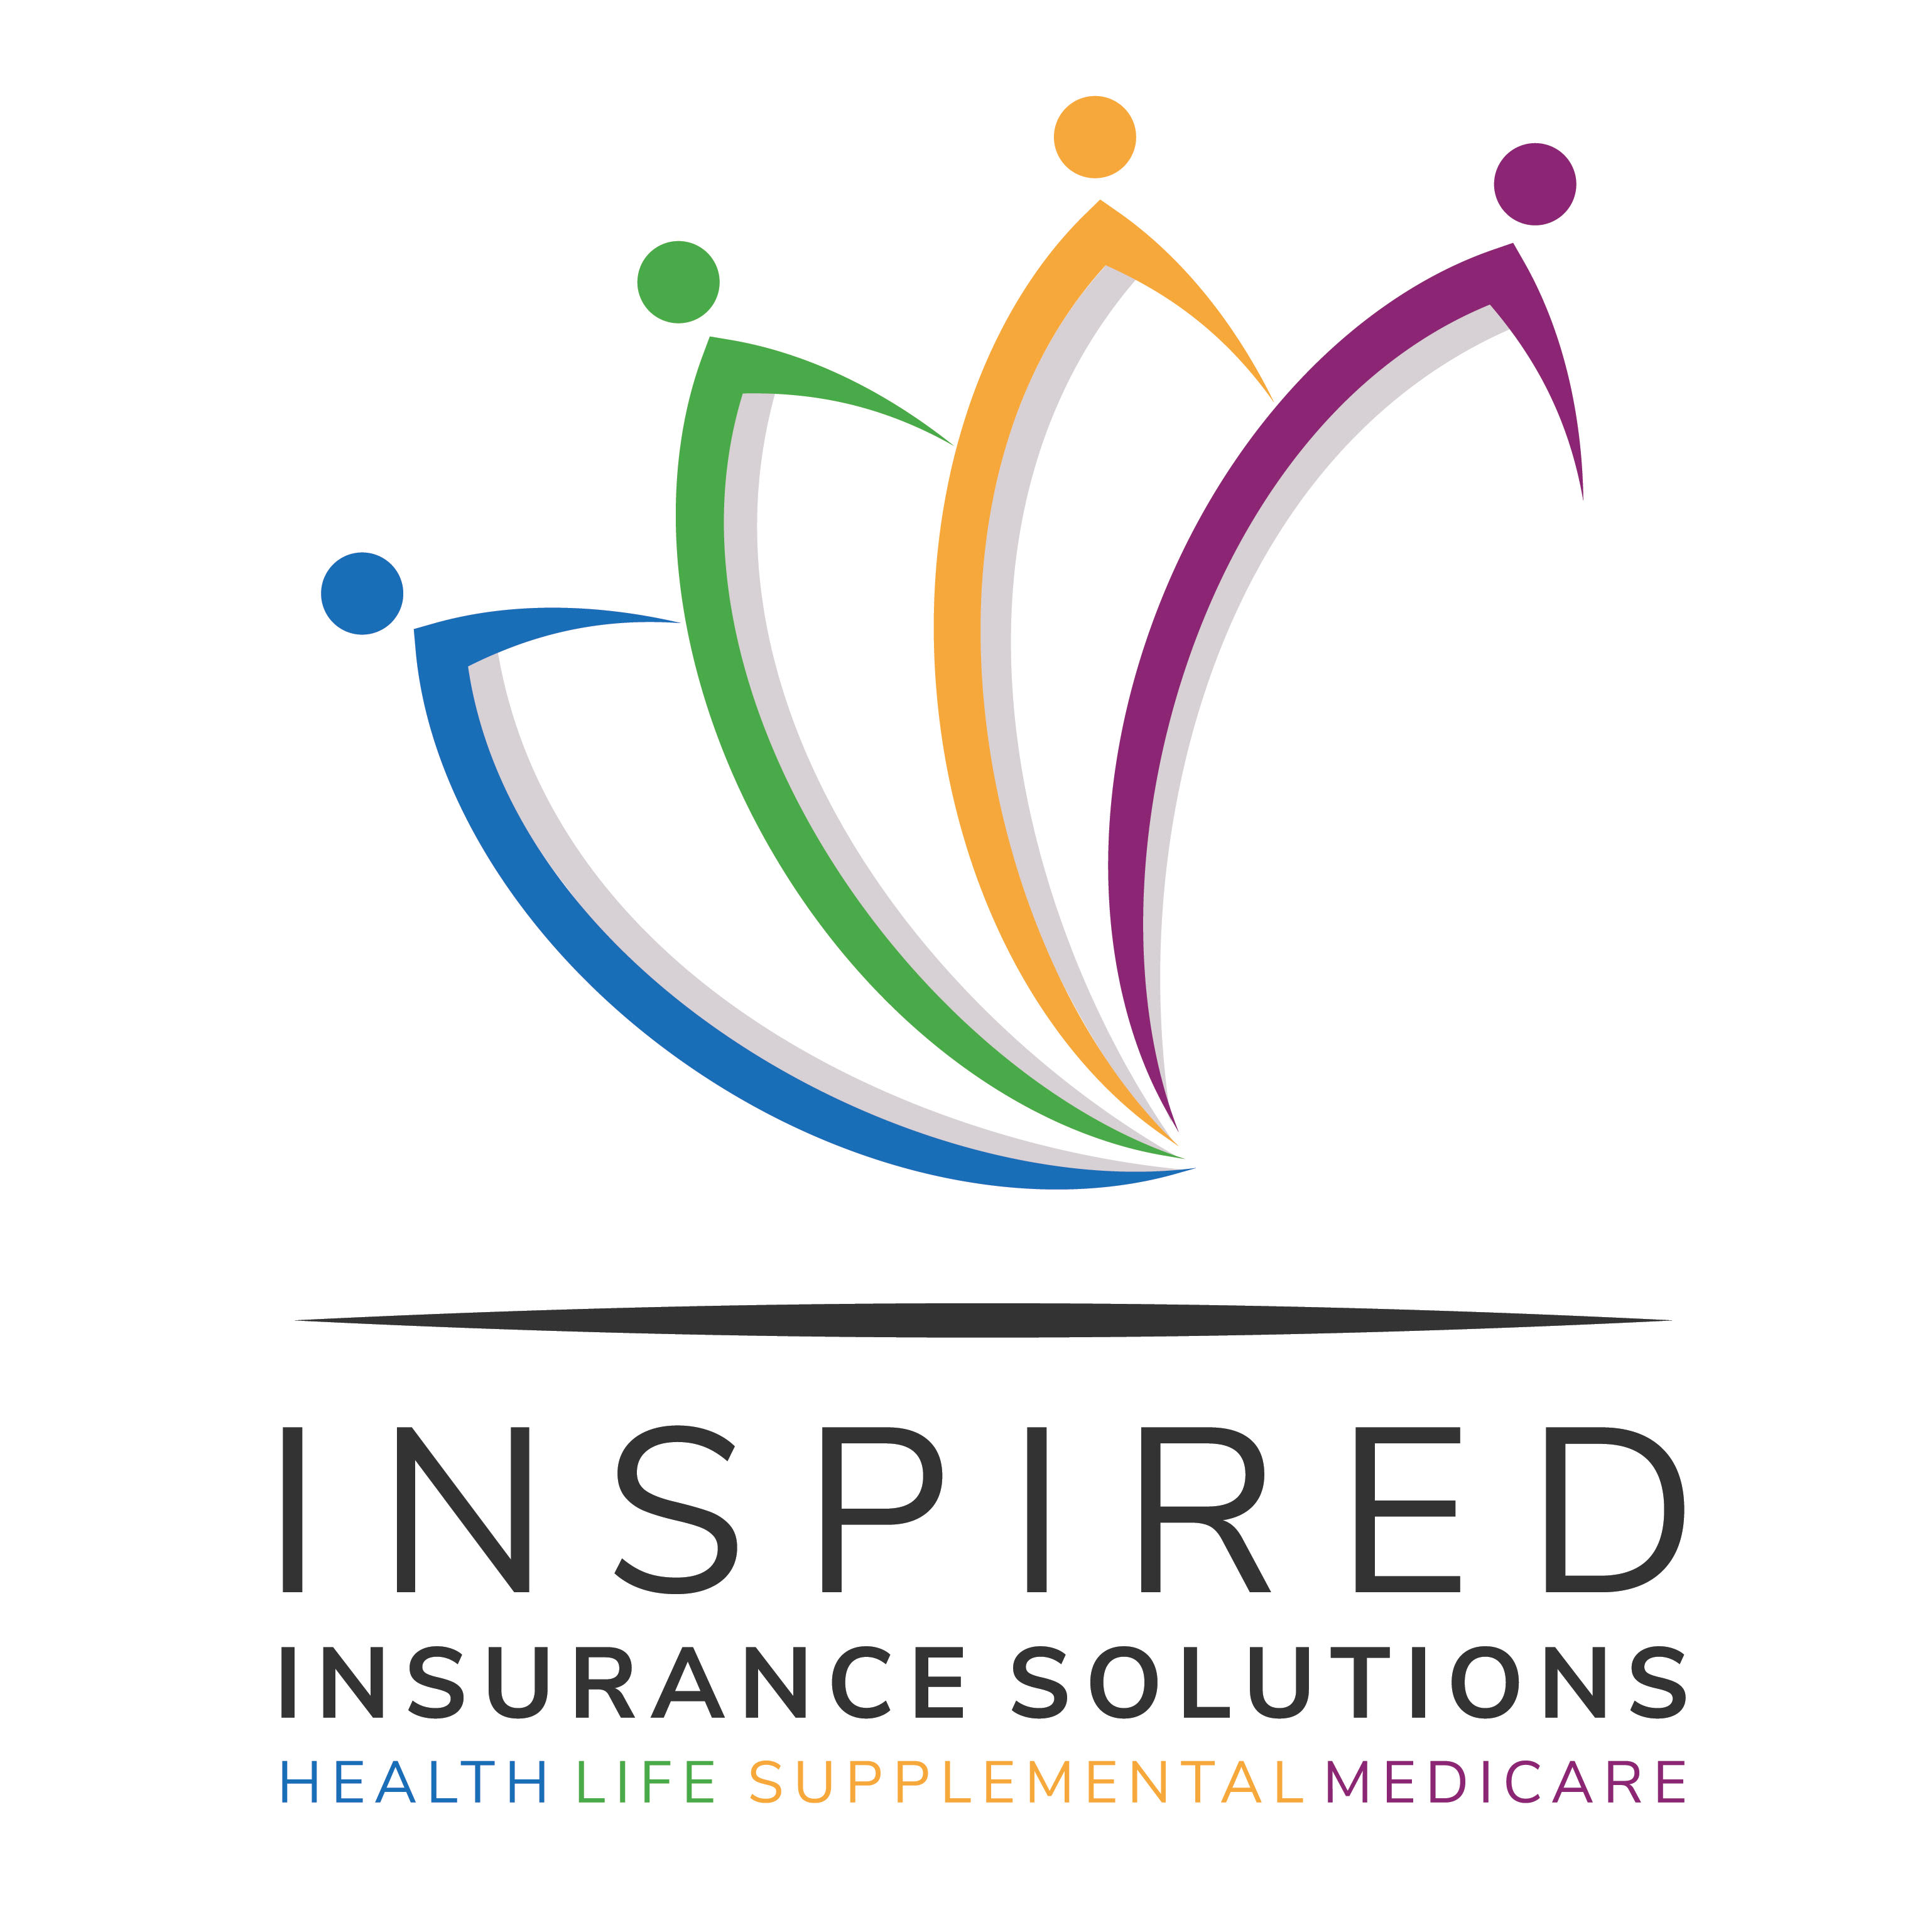 """Inspired Insurance Solutions Named in Orlando Business Journal's """"Top 25 Women-Owned Businesses"""""""